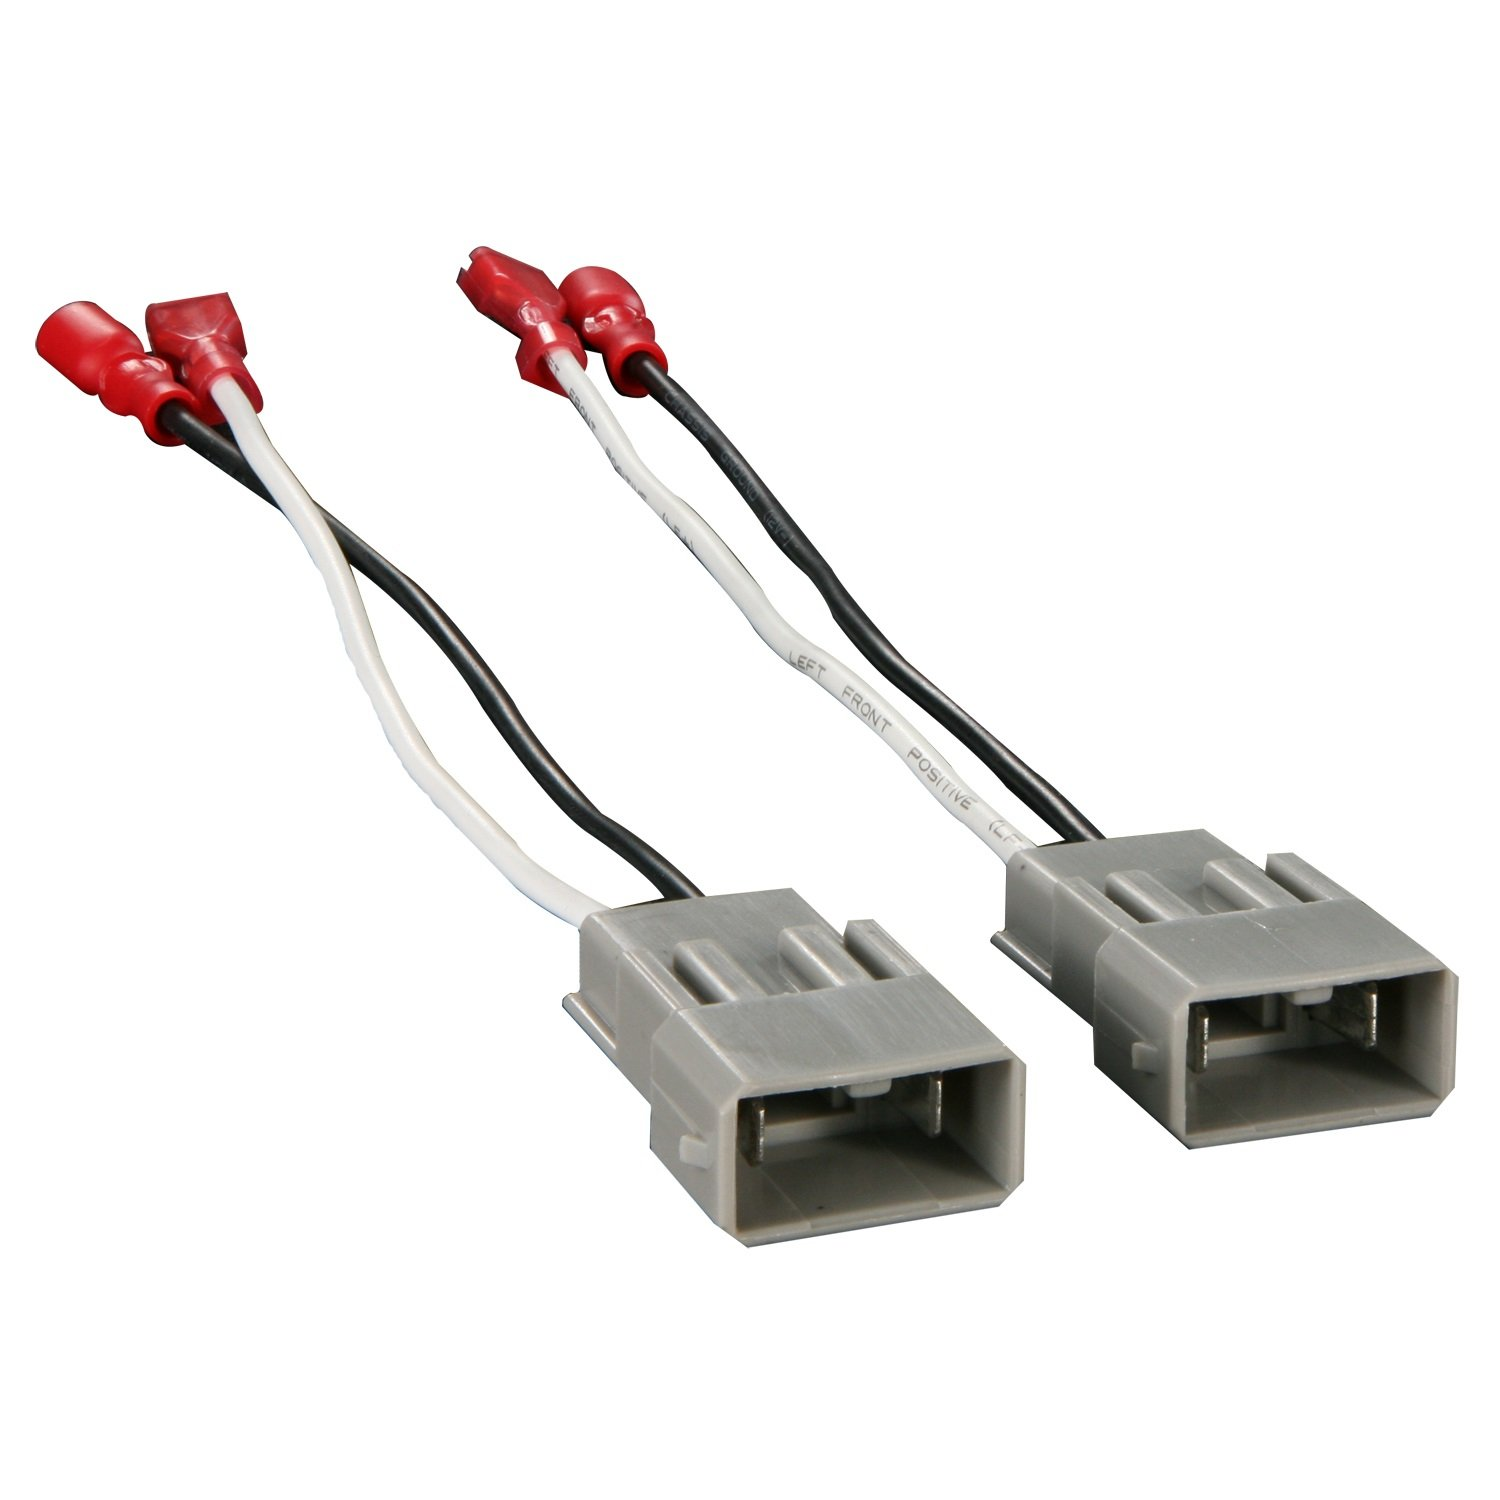 61IiEhc7w5L._SL1500_ amazon com metra 72 7800 speaker connector harnesses for select connect speaker wire to harness at nearapp.co